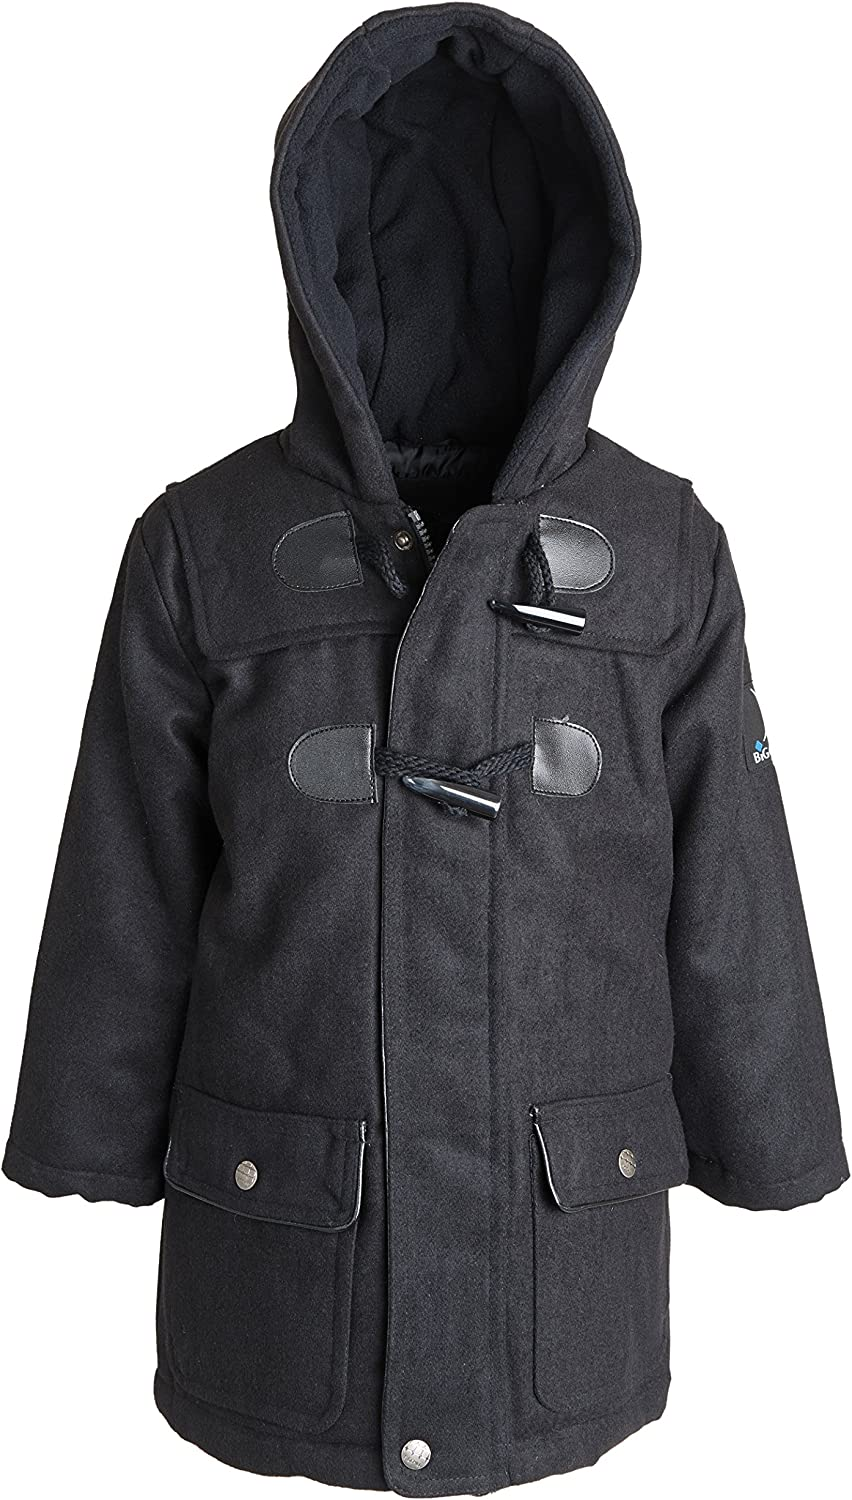 Big Chill Boys and Toddler Toggle Hooded Wool Look Dress Coat Jacket: Clothing